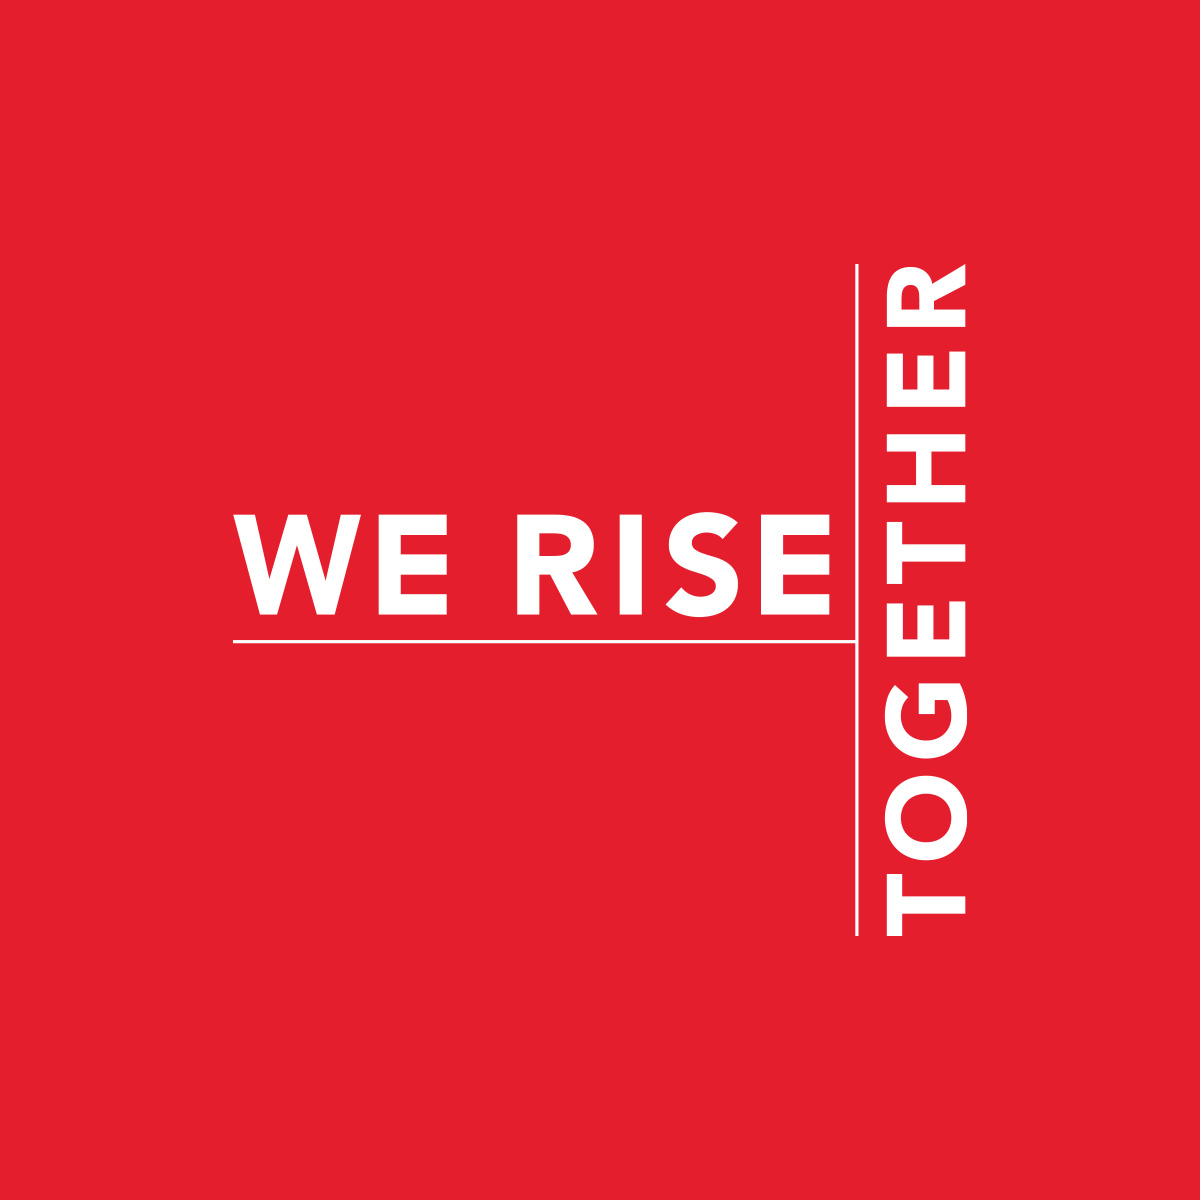 We rise together.